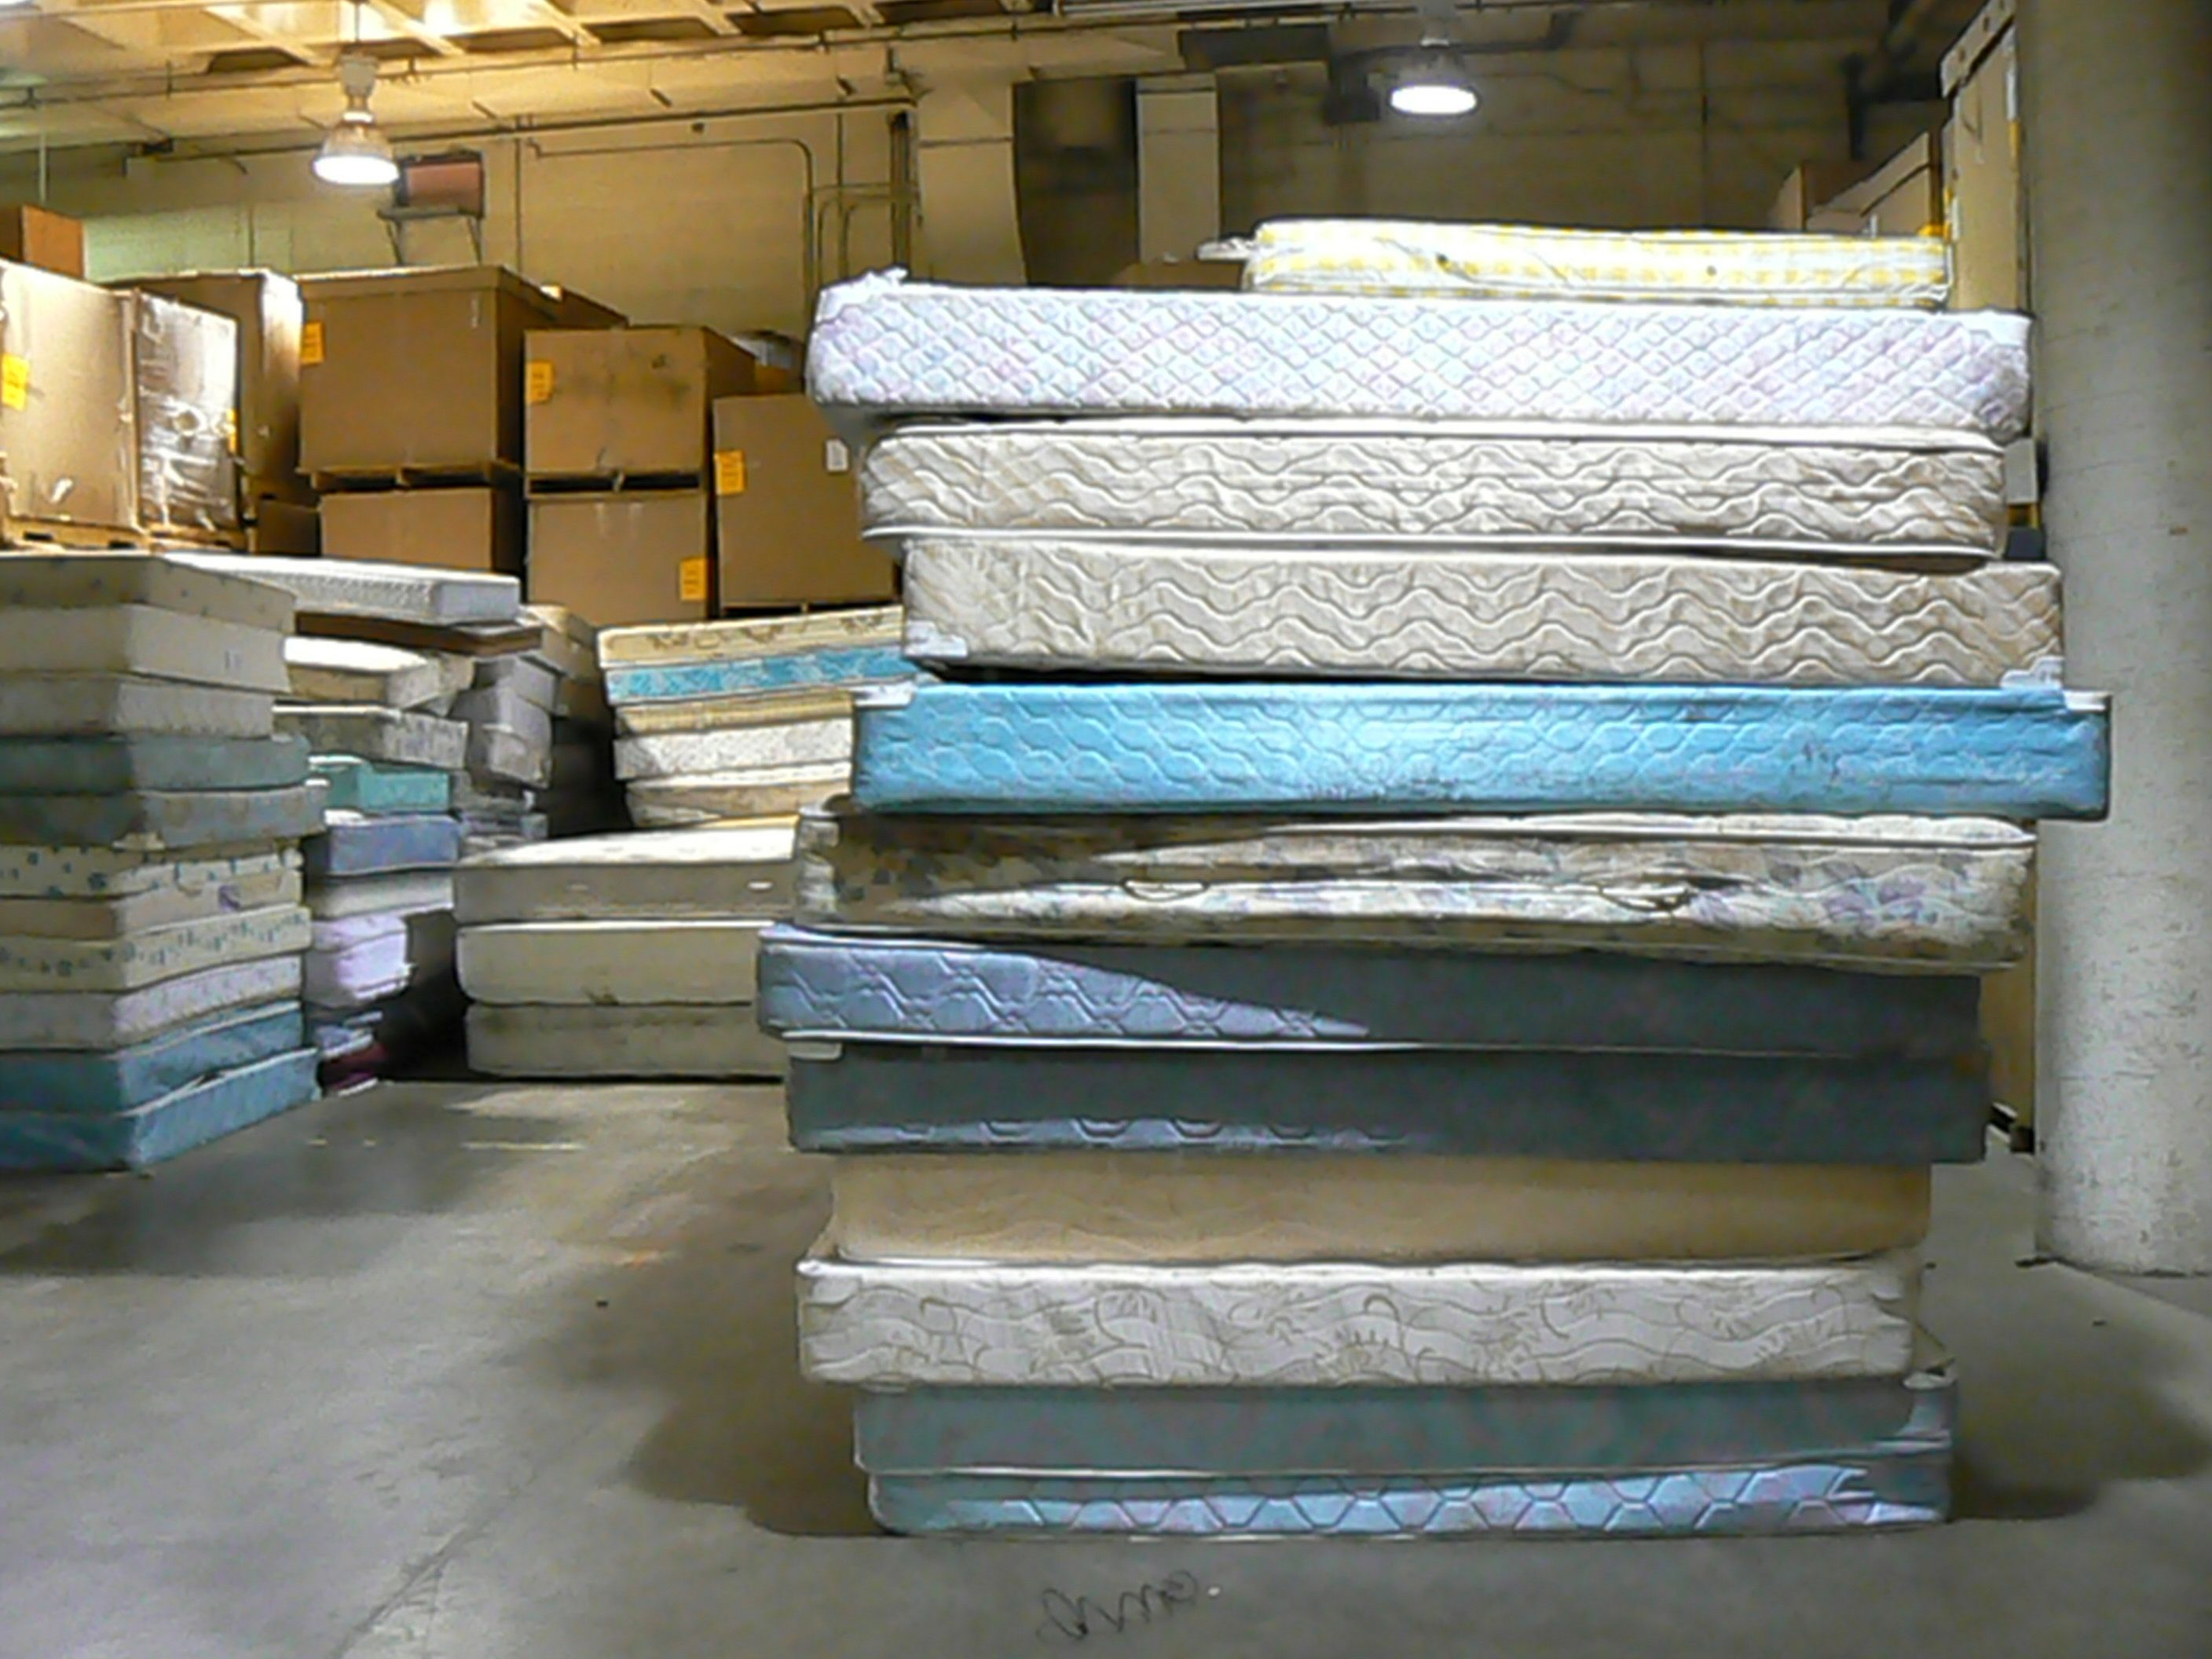 posts on of mattresses geraldton everything and over old free news purchases local removal mattress bonus delivery